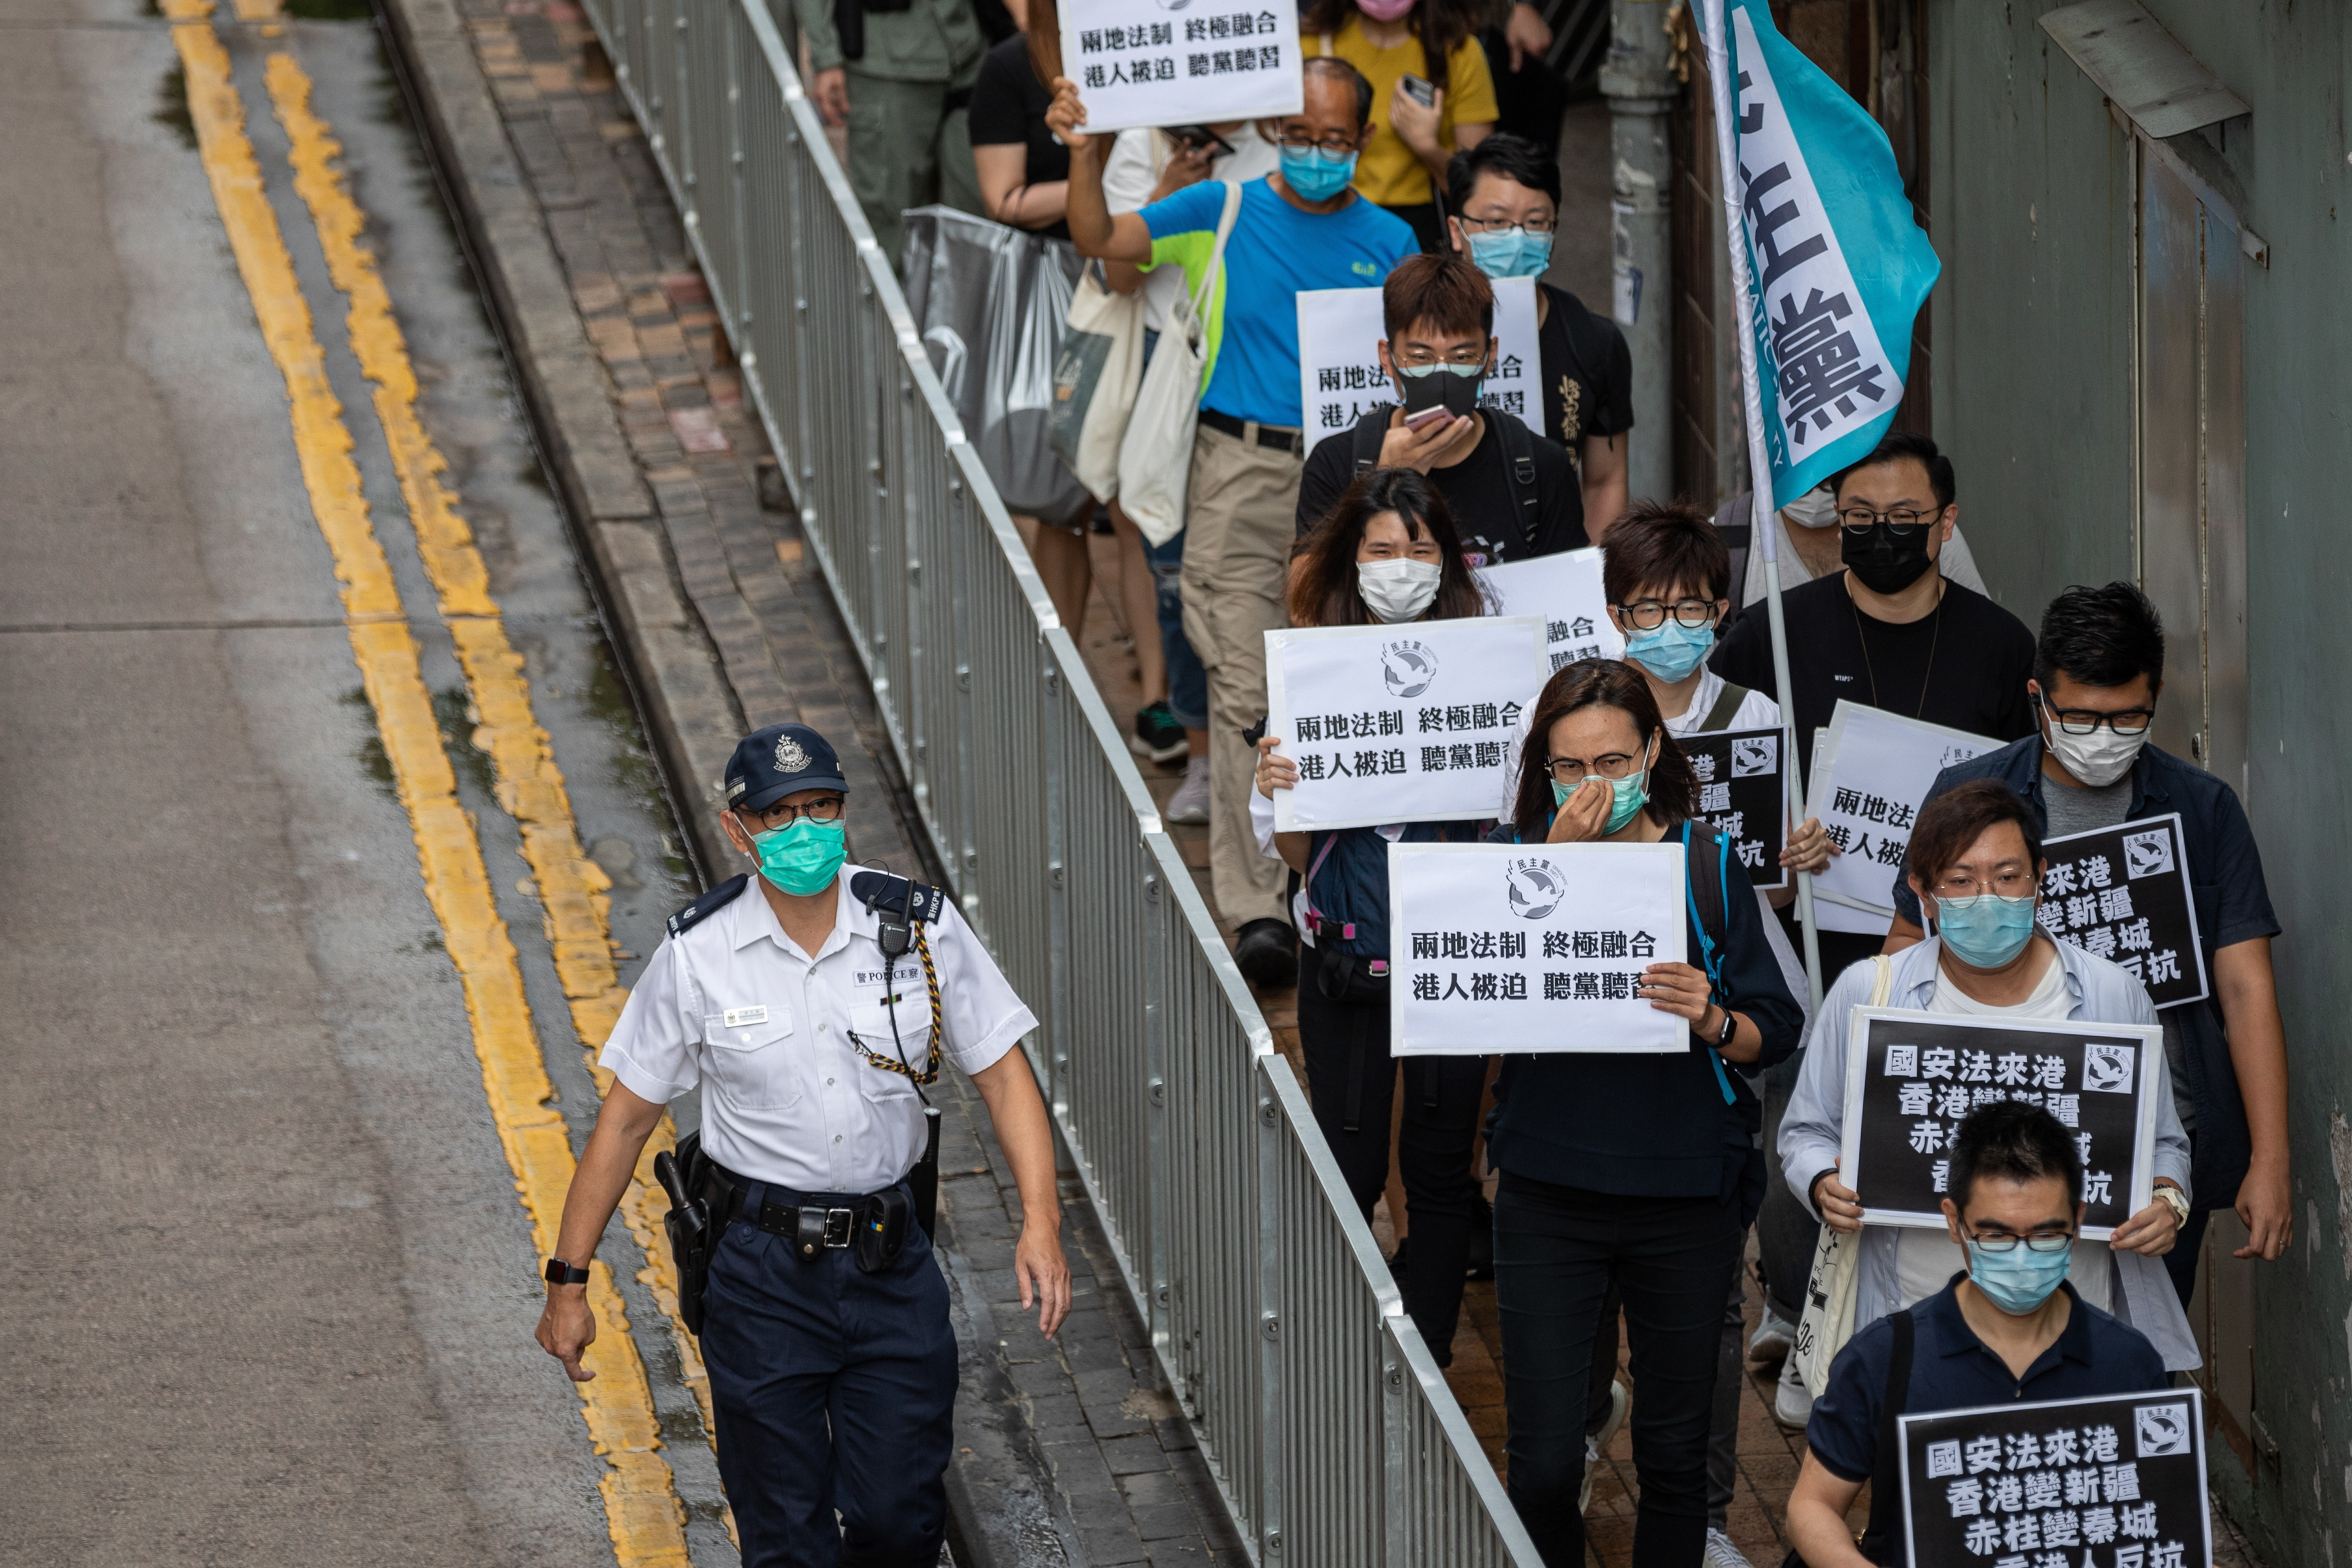 Pan-democrat lawmakers and activists make their way to Chinas Liaison Office during a rally against a security law in Hong Kong, China.